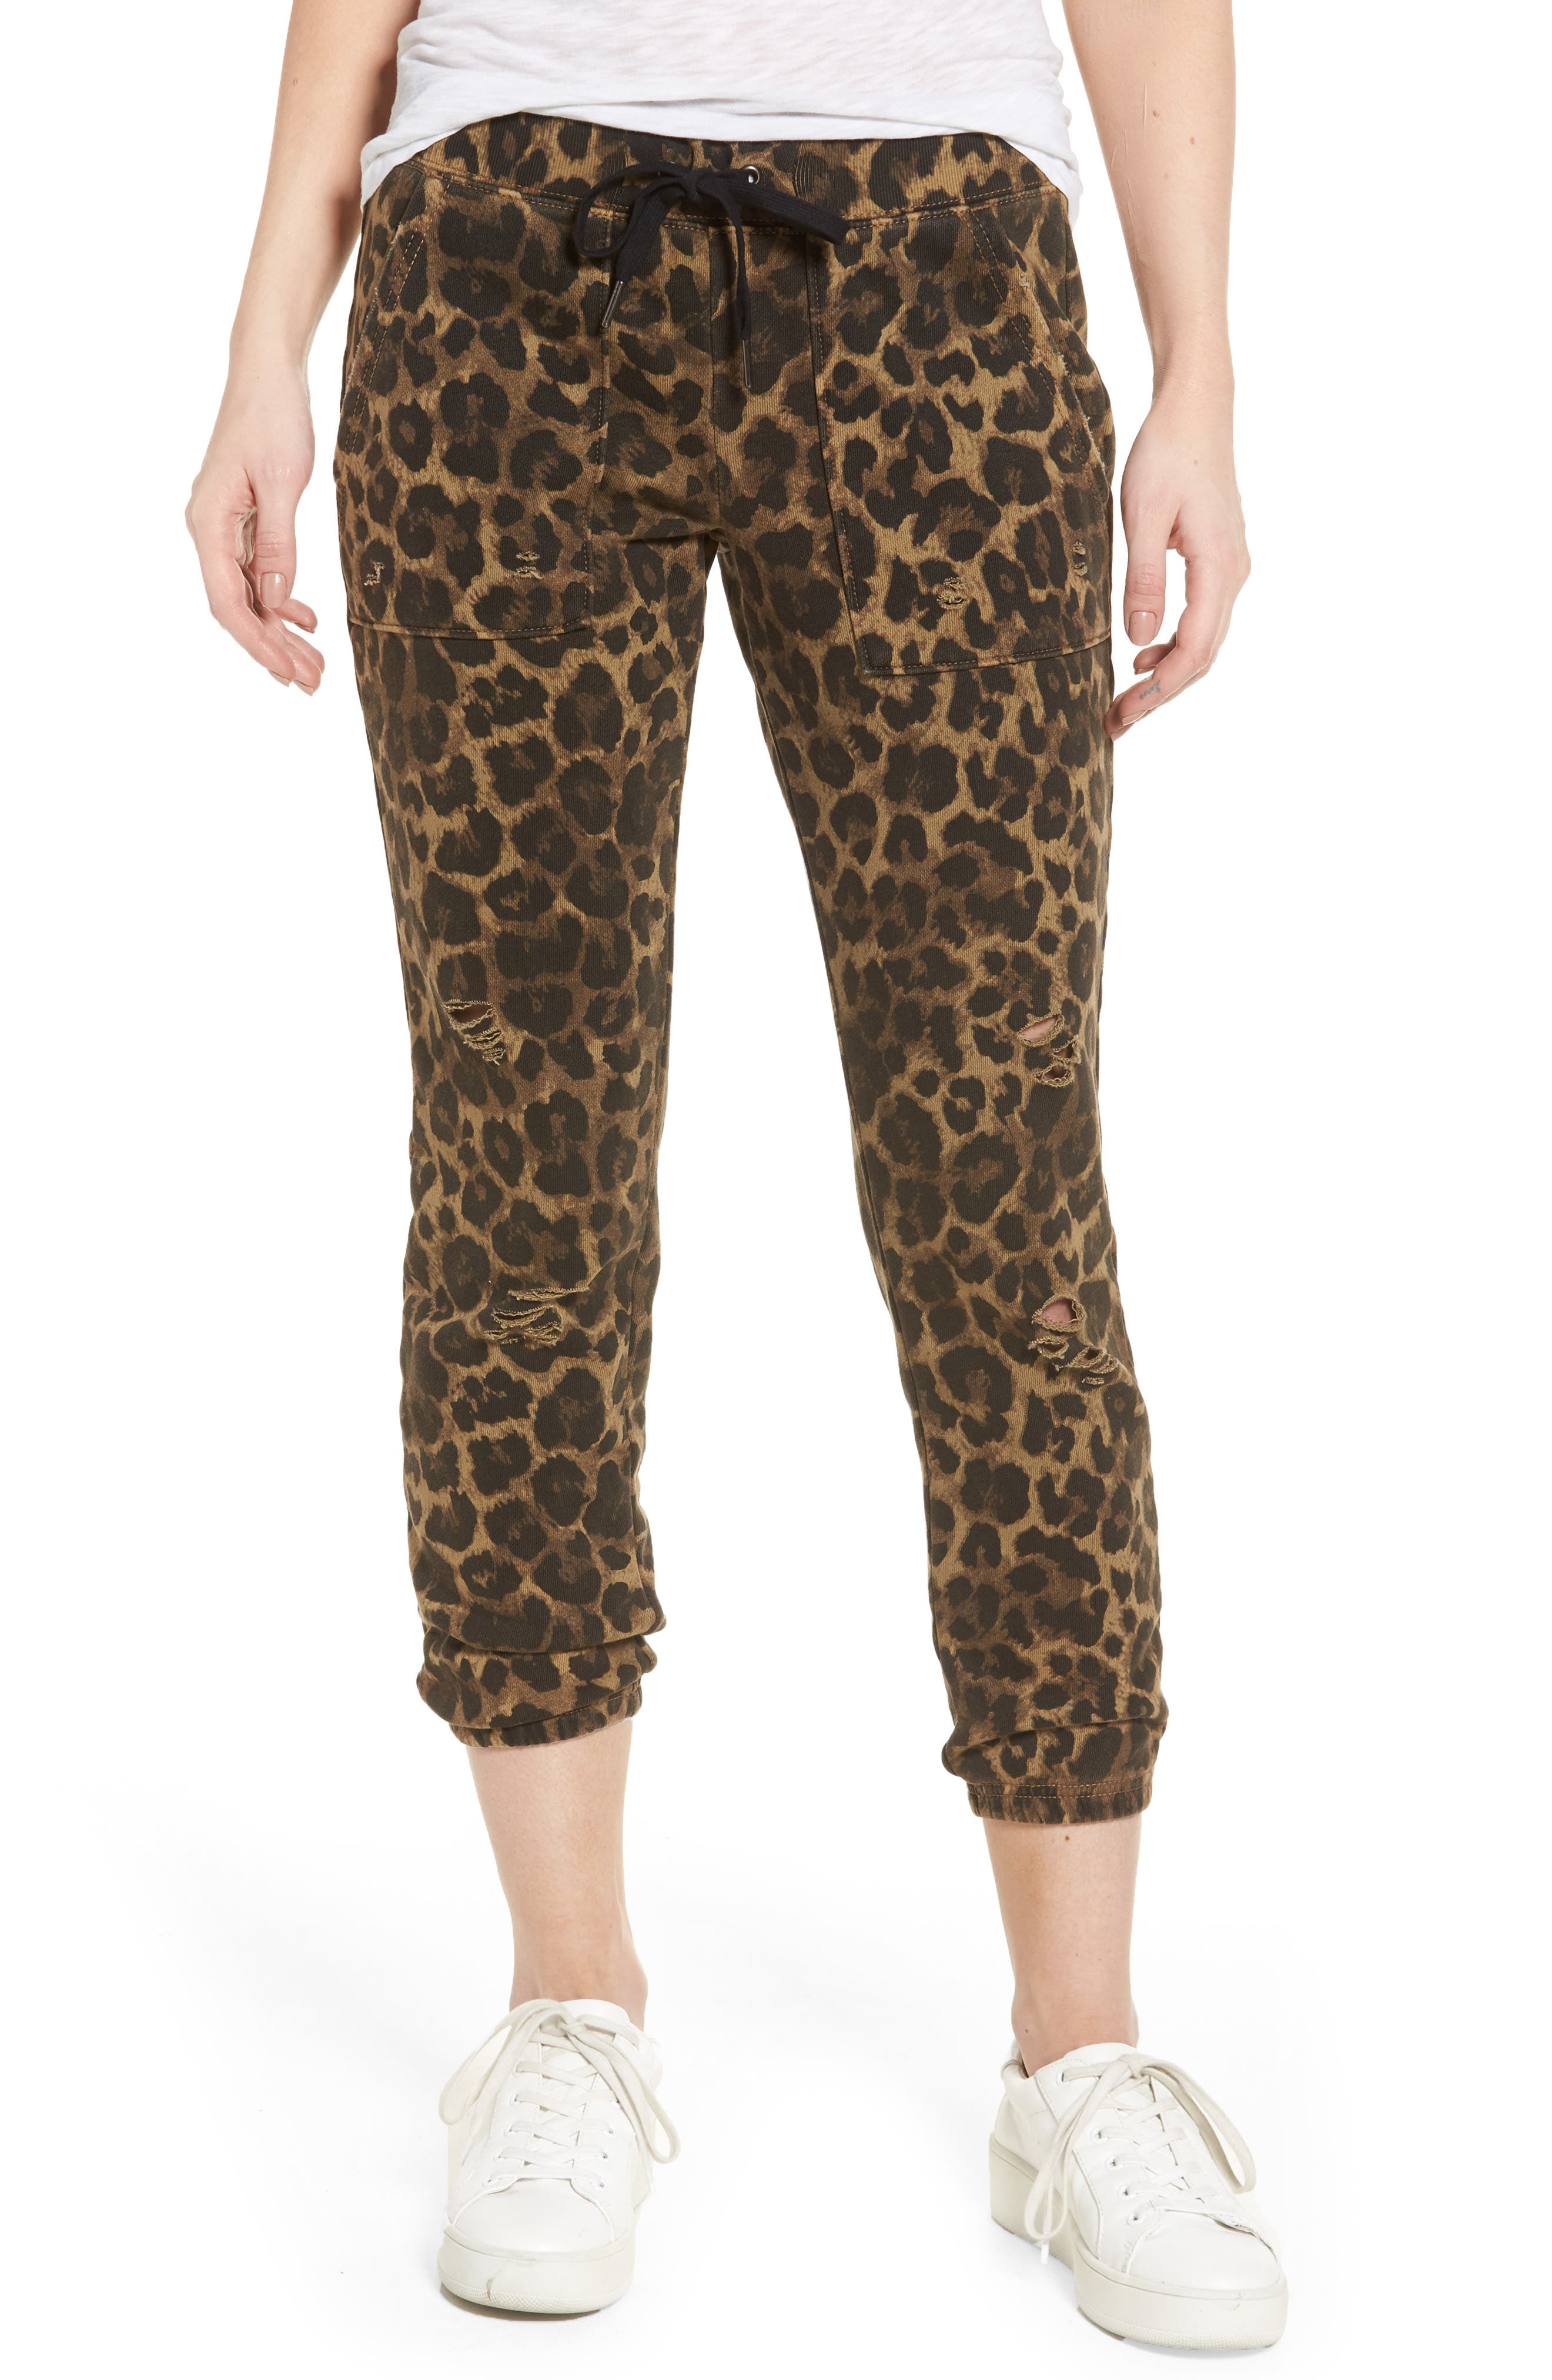 Pam & Gela Distressed Leopard Print Sweatpants